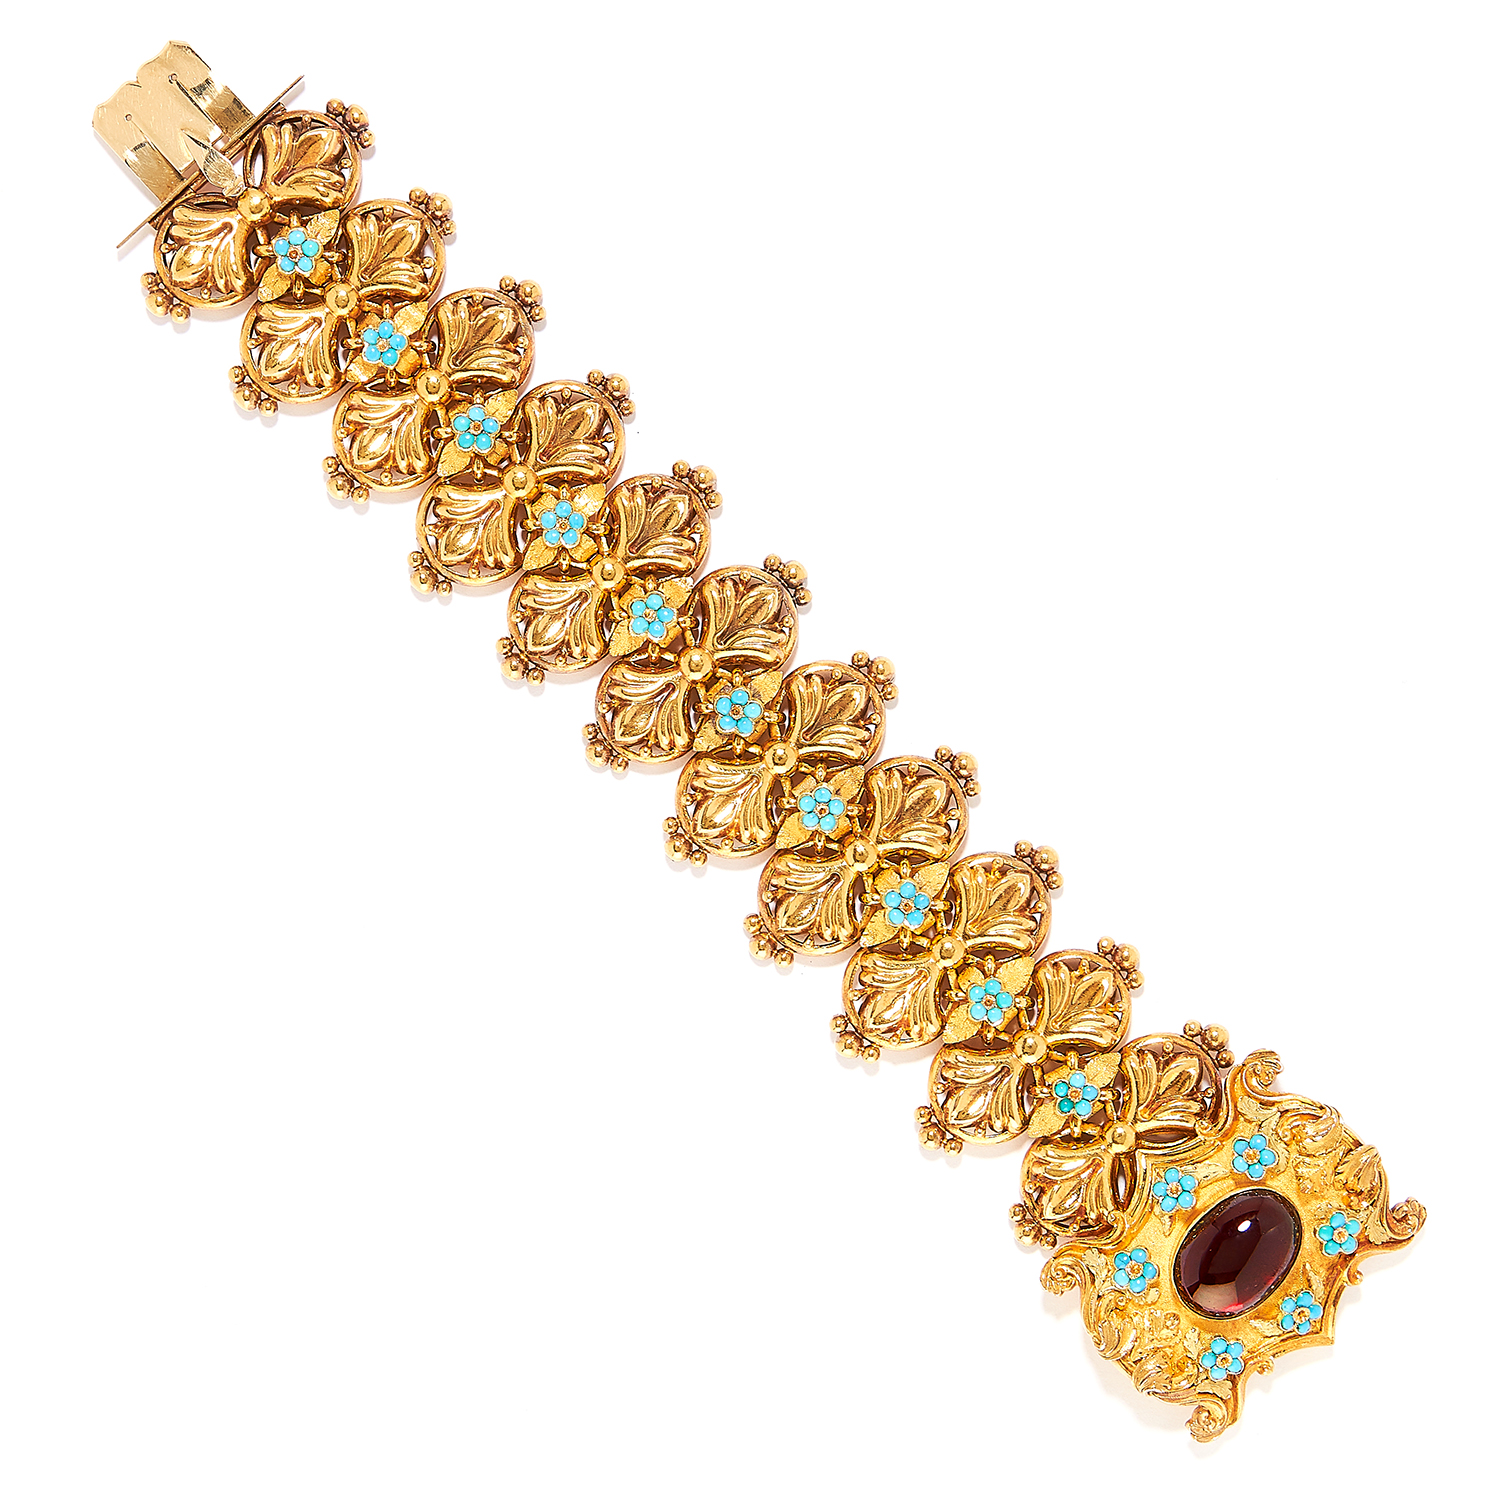 ANTIQUE GARNET AND TURQUOISE FANCY LINK BRACELET in high carat yellow gold, set with cabochon